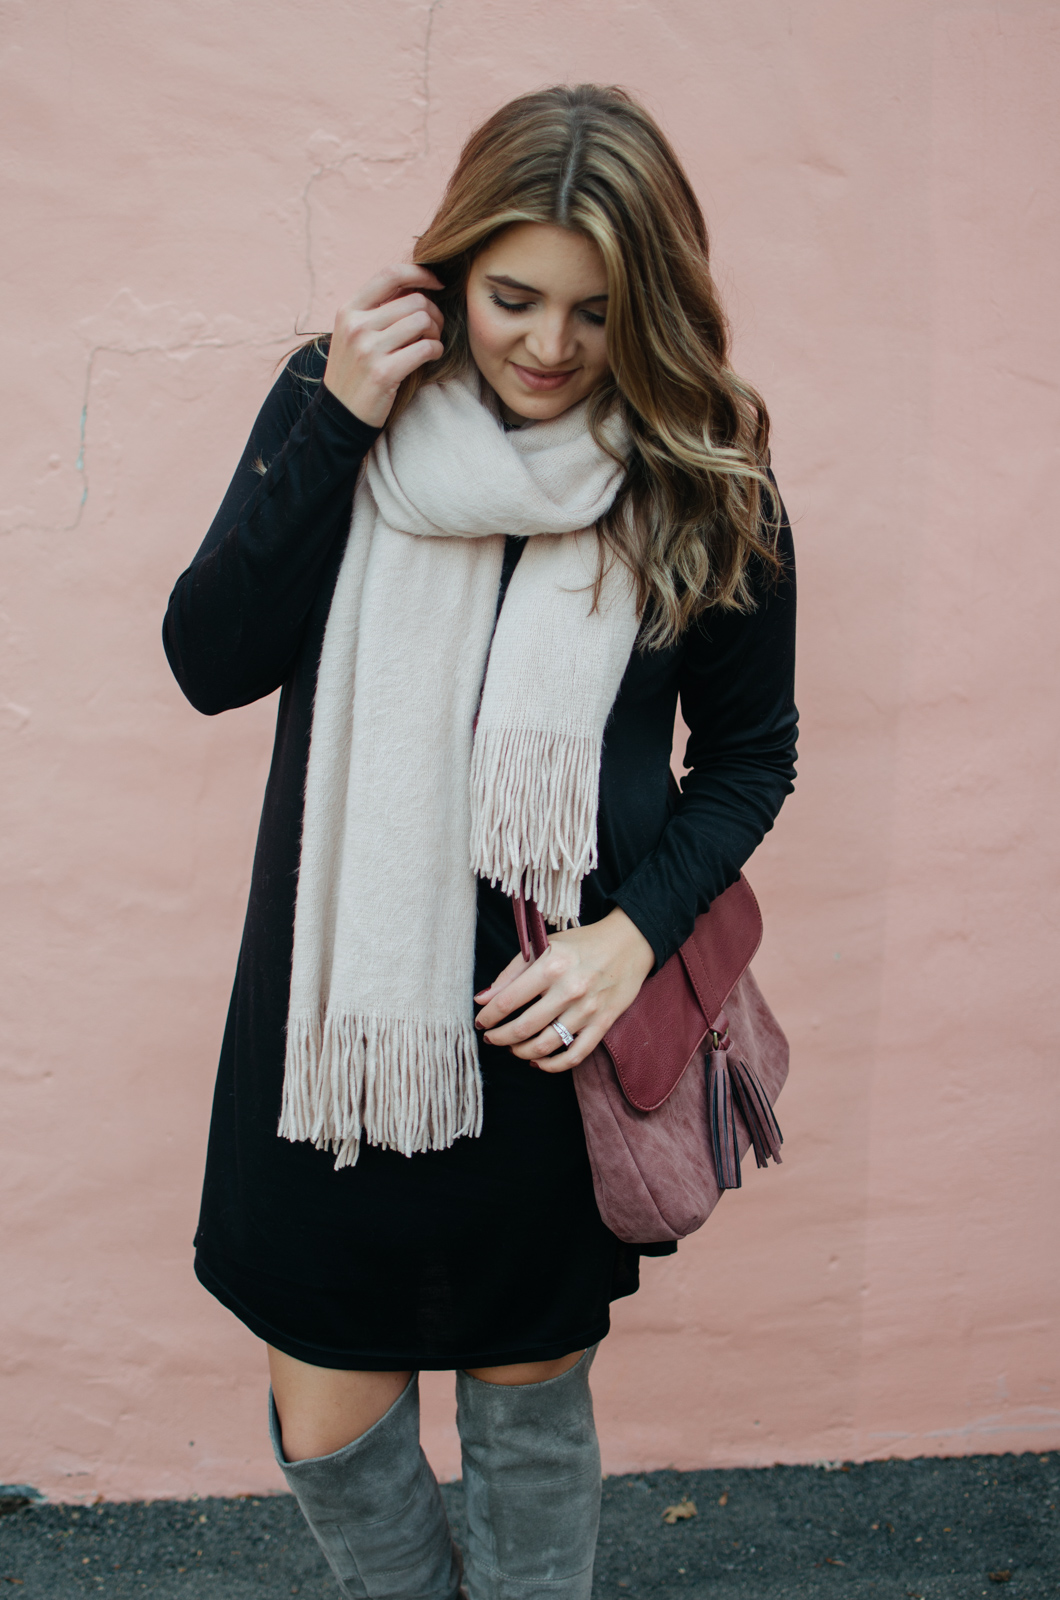 winter dress outfit - dress scarf outfit idea | Click through for outfit details or to see more cute Winter outfit ideas. bylaurenm.com